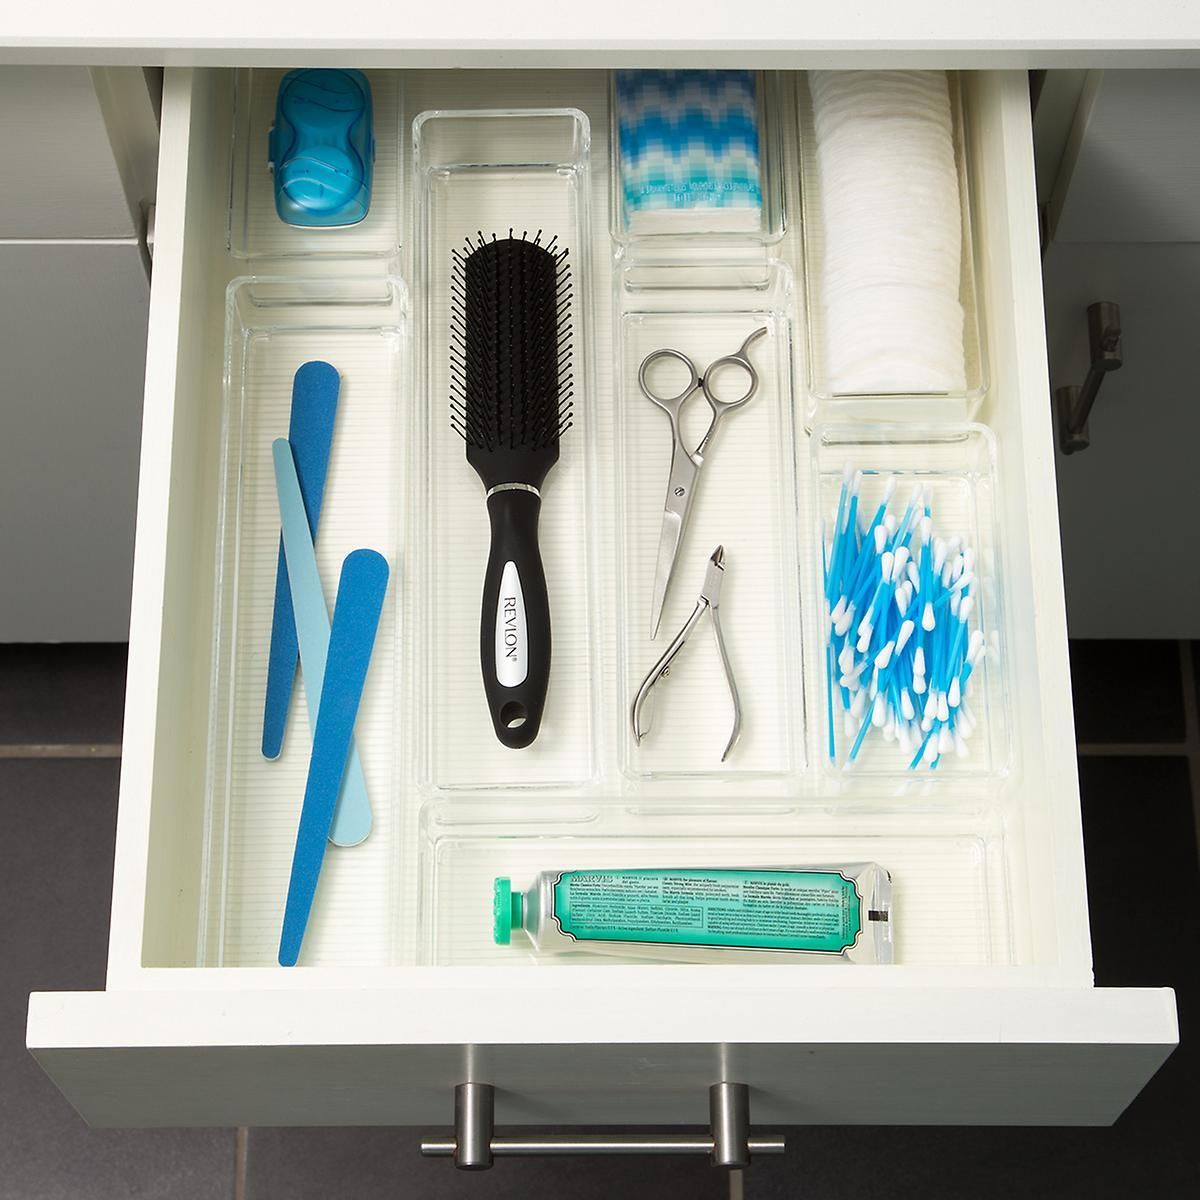 "Lastly, seperate and store all those items in your bathroom drawer with this acrylic drawer tray. Complete with different sized compartments, this drawer accessory is ideal for holding everything from qtips to your toothbrusha nd hairbrush. You won't know how you kept the bathroom organized without this! This divided tray, at The Container Store, is $19.99. <a href=""http://bit.ly/2mehg6x"" target=""_blank"" rel=""noopener"">Details here</a>. Image: The Container Store"